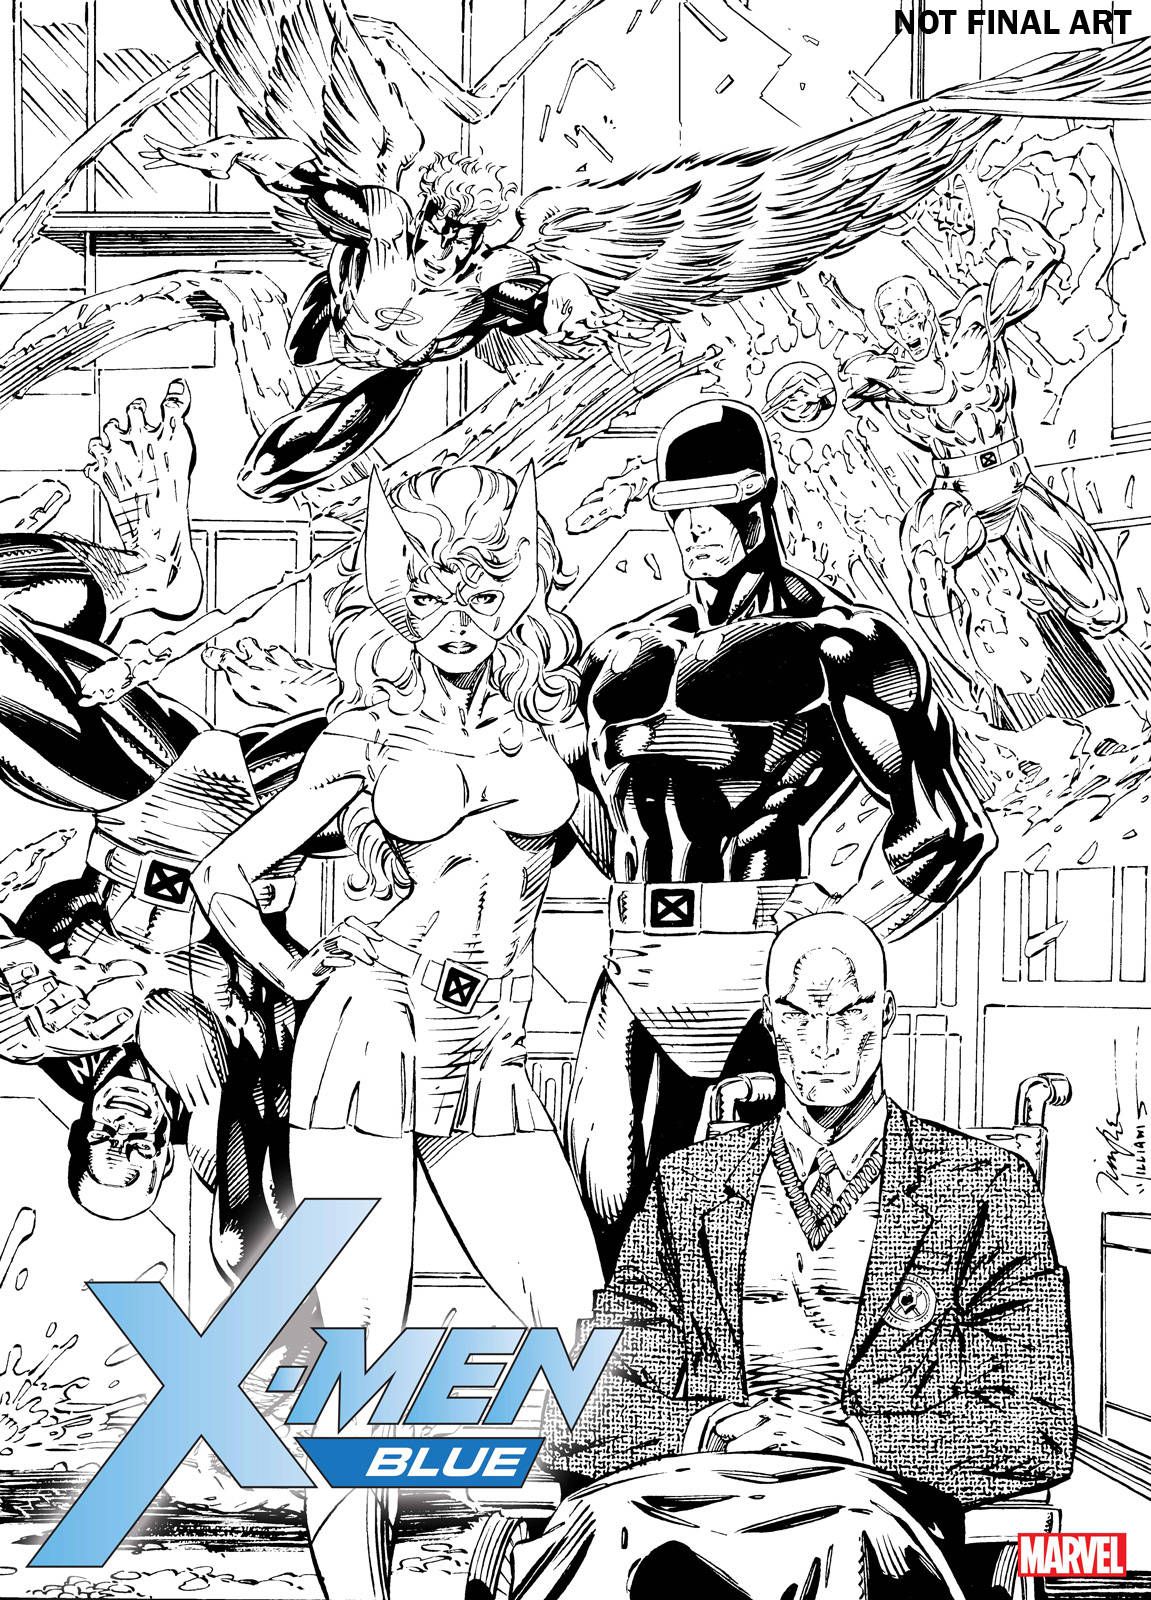 X-MEN BLUE & X-MEN GOLD